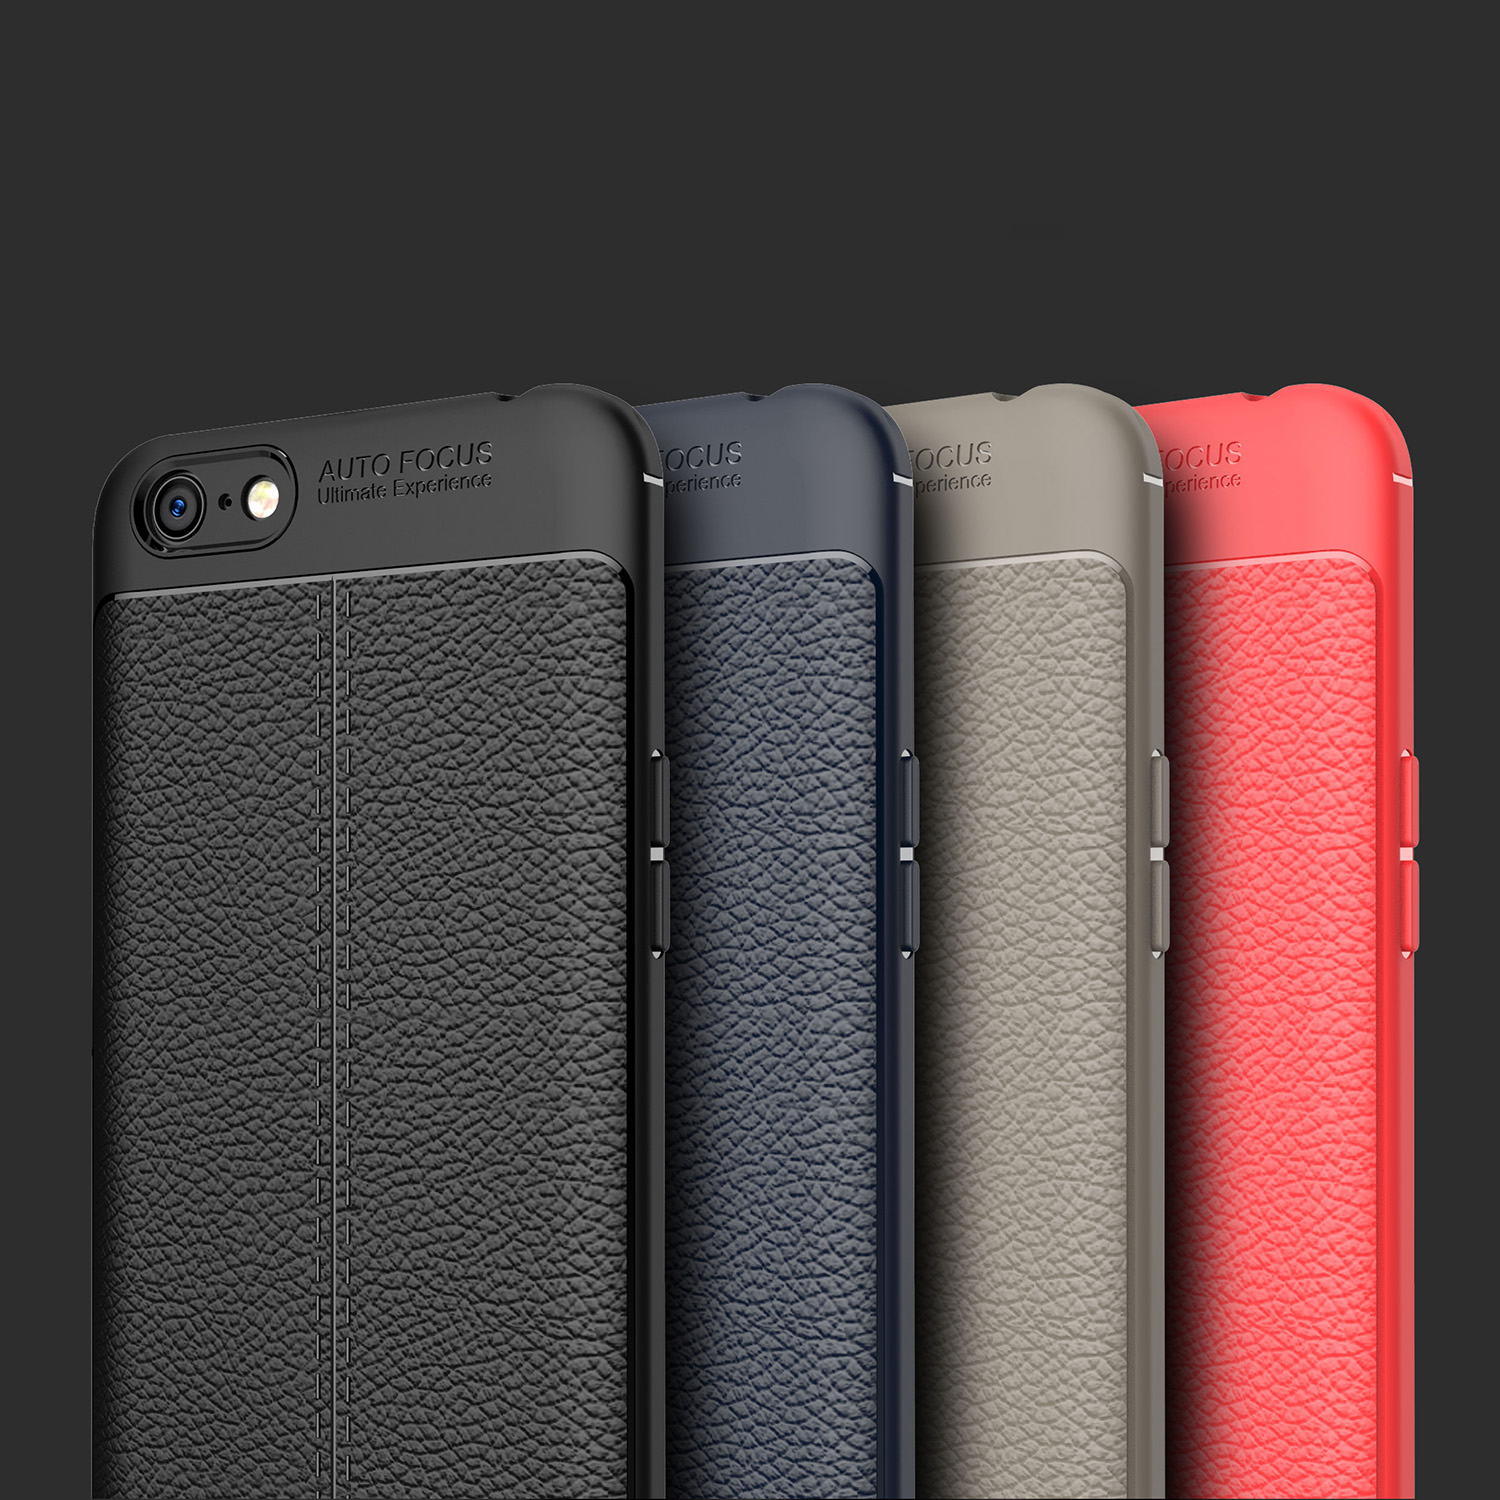 classic fit 570d0 80c30 Oppo F1S R9S A37 A37F Neo 7 Neo 5S F1 Plus Soft Leather TPU Case Cover